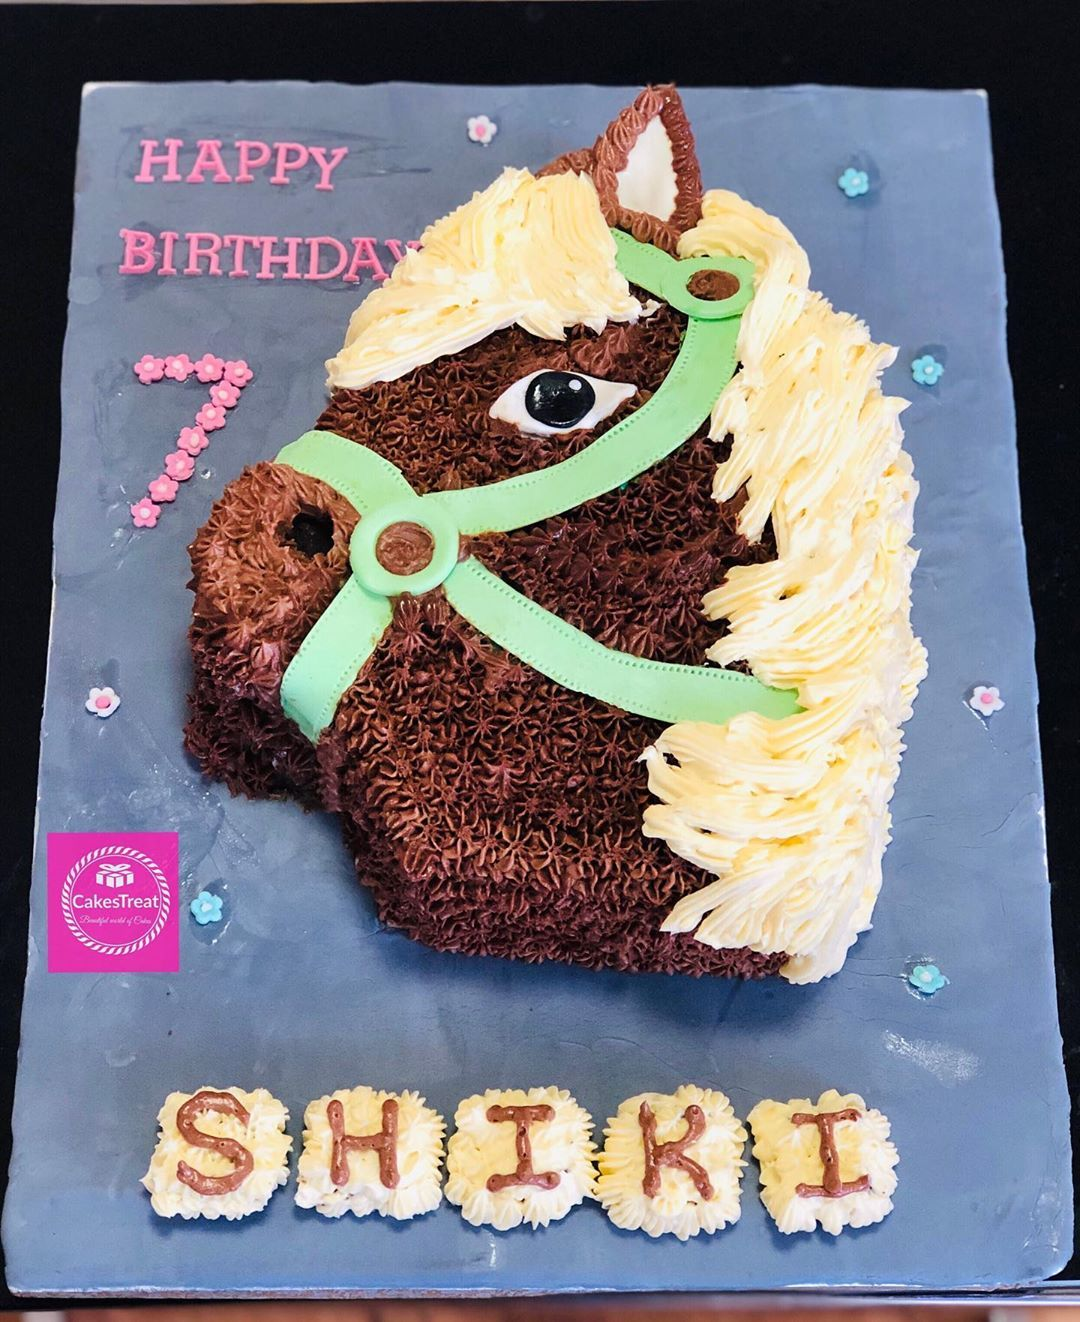 Horse theme chocolate cake for a cute little princess who loves horses.